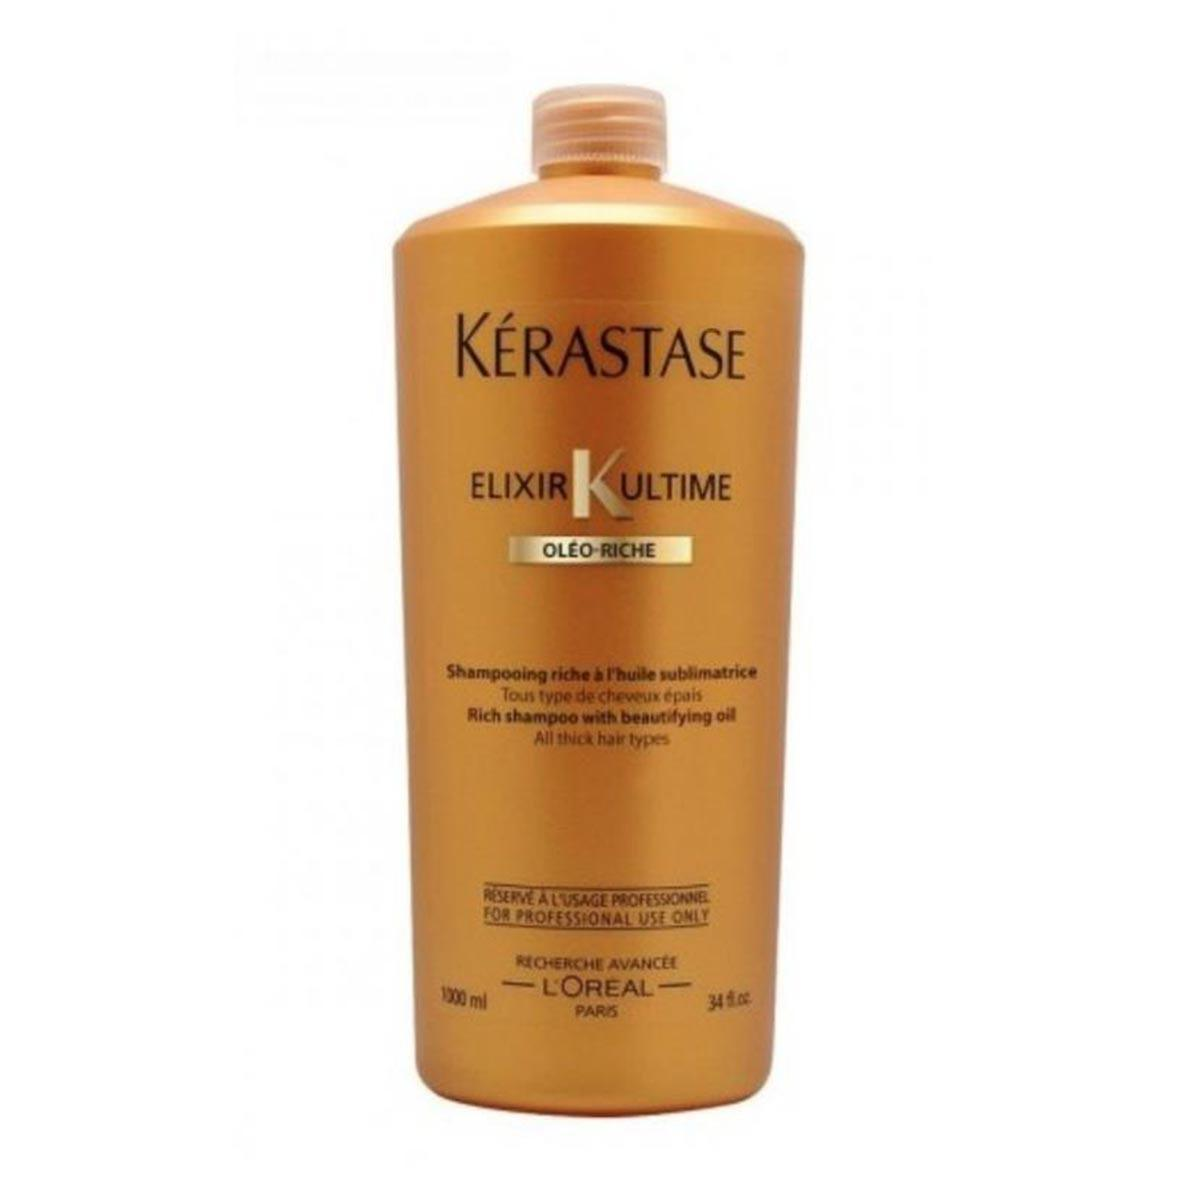 Kerastase fragrances Elixir K Ultime Oleo Riche Shampoo 1000ml